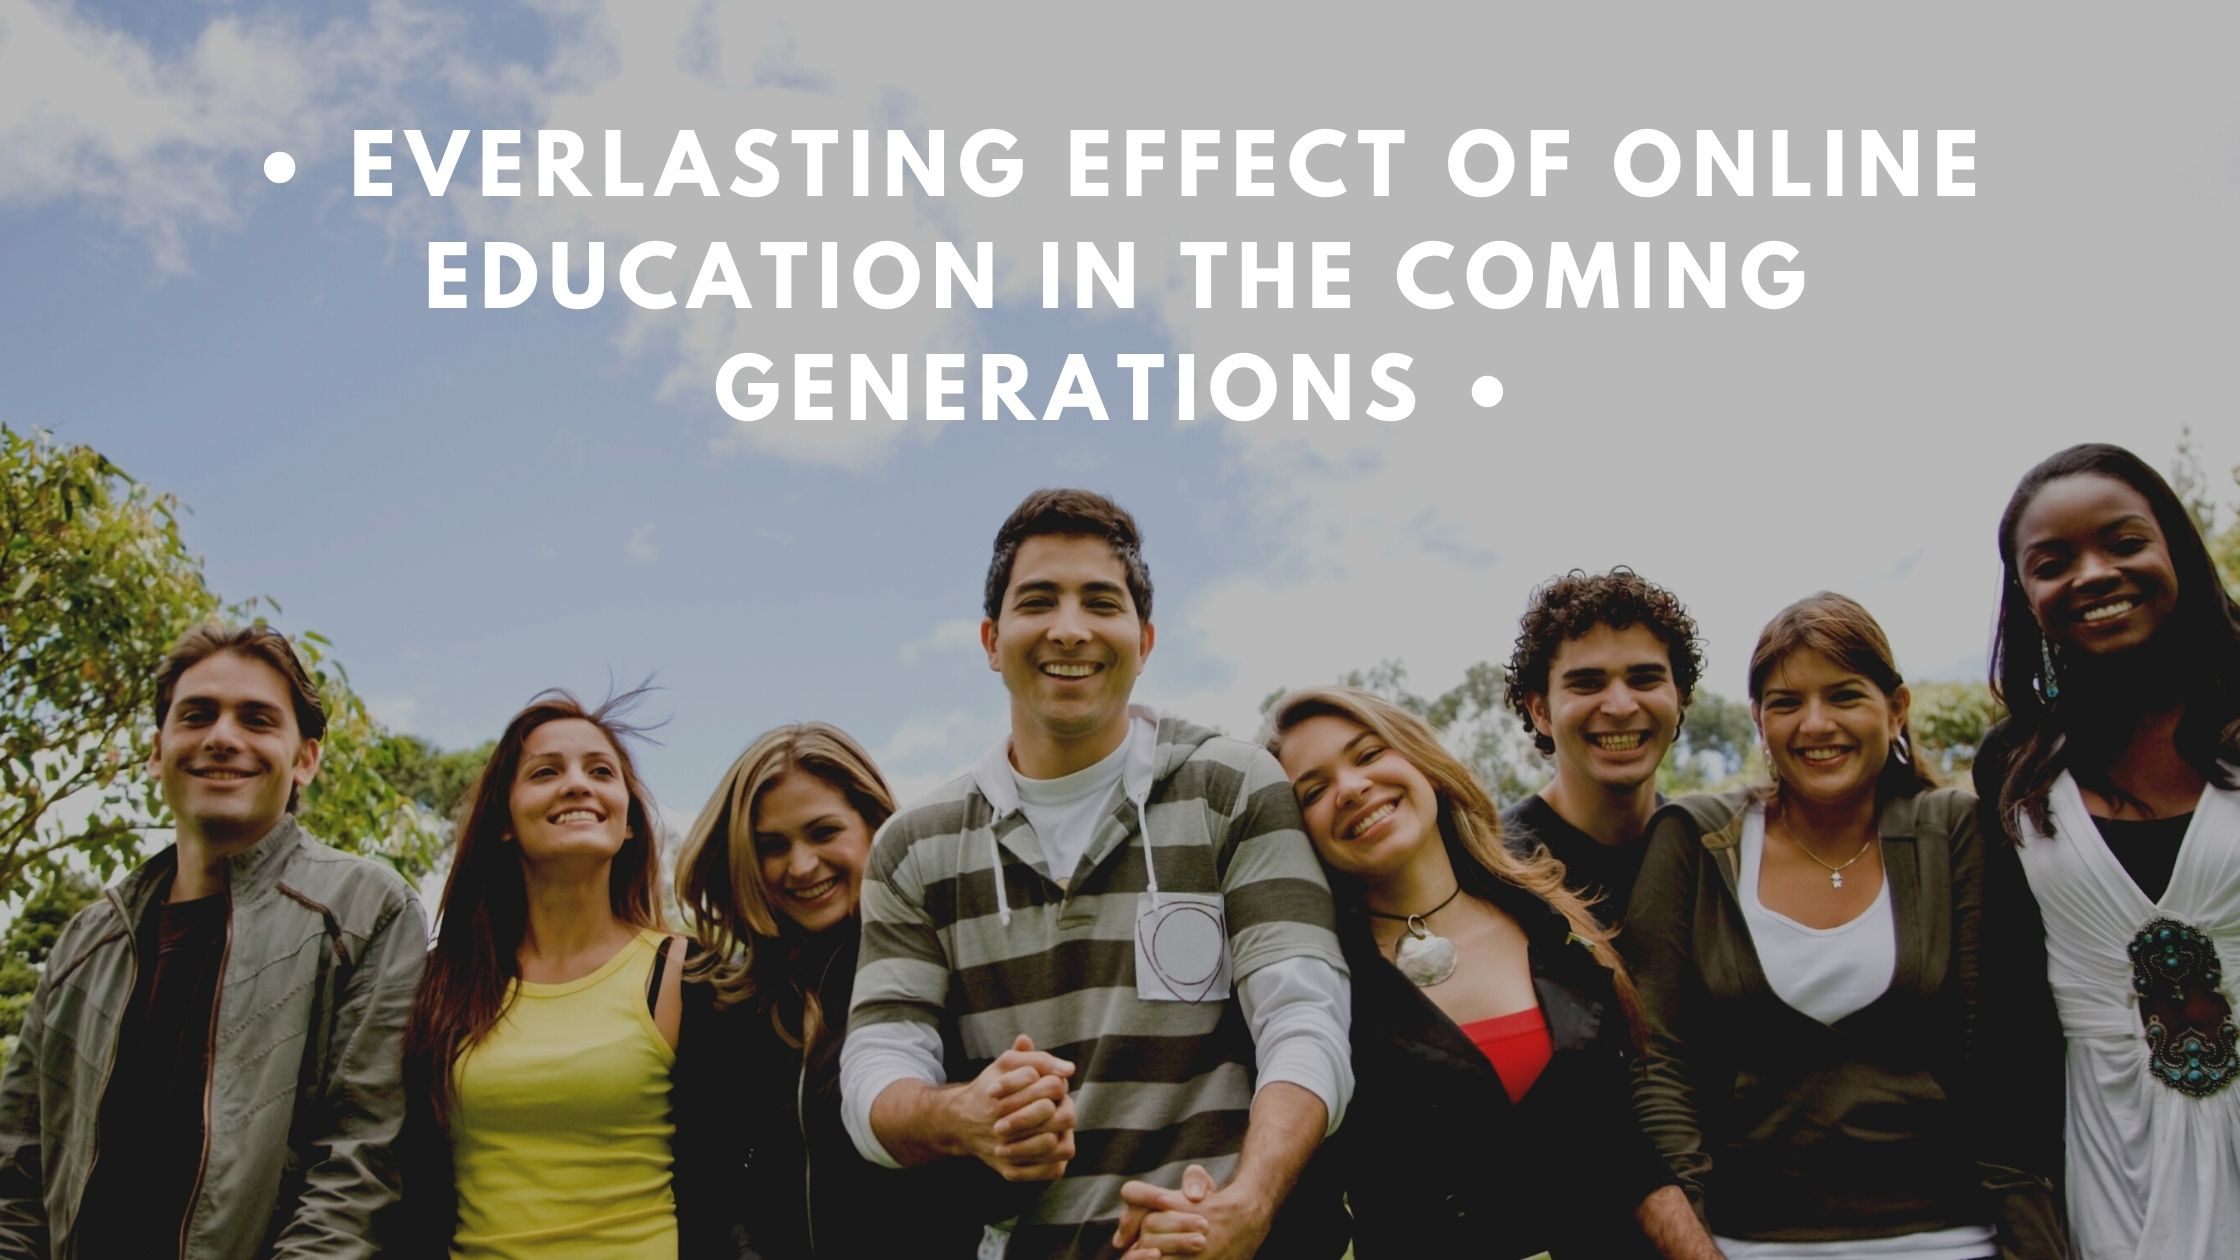 Everlasting Effect of Online Education in the coming generations